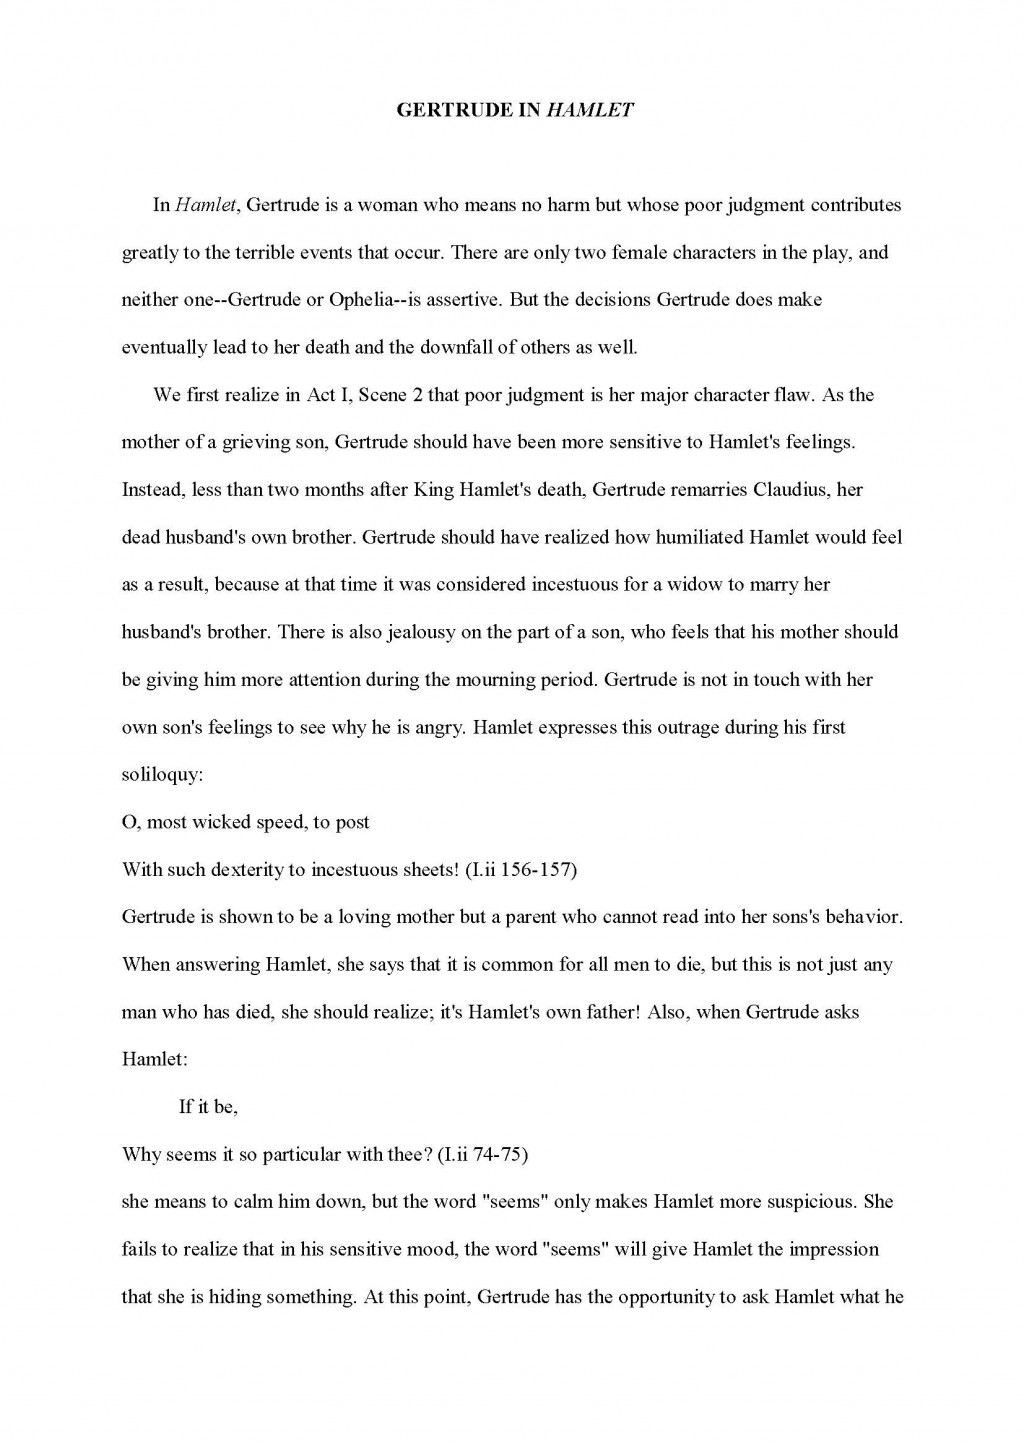 013 Analysis Essay Sample Example How To Begin Amazing A Critical Review Structure Response Large